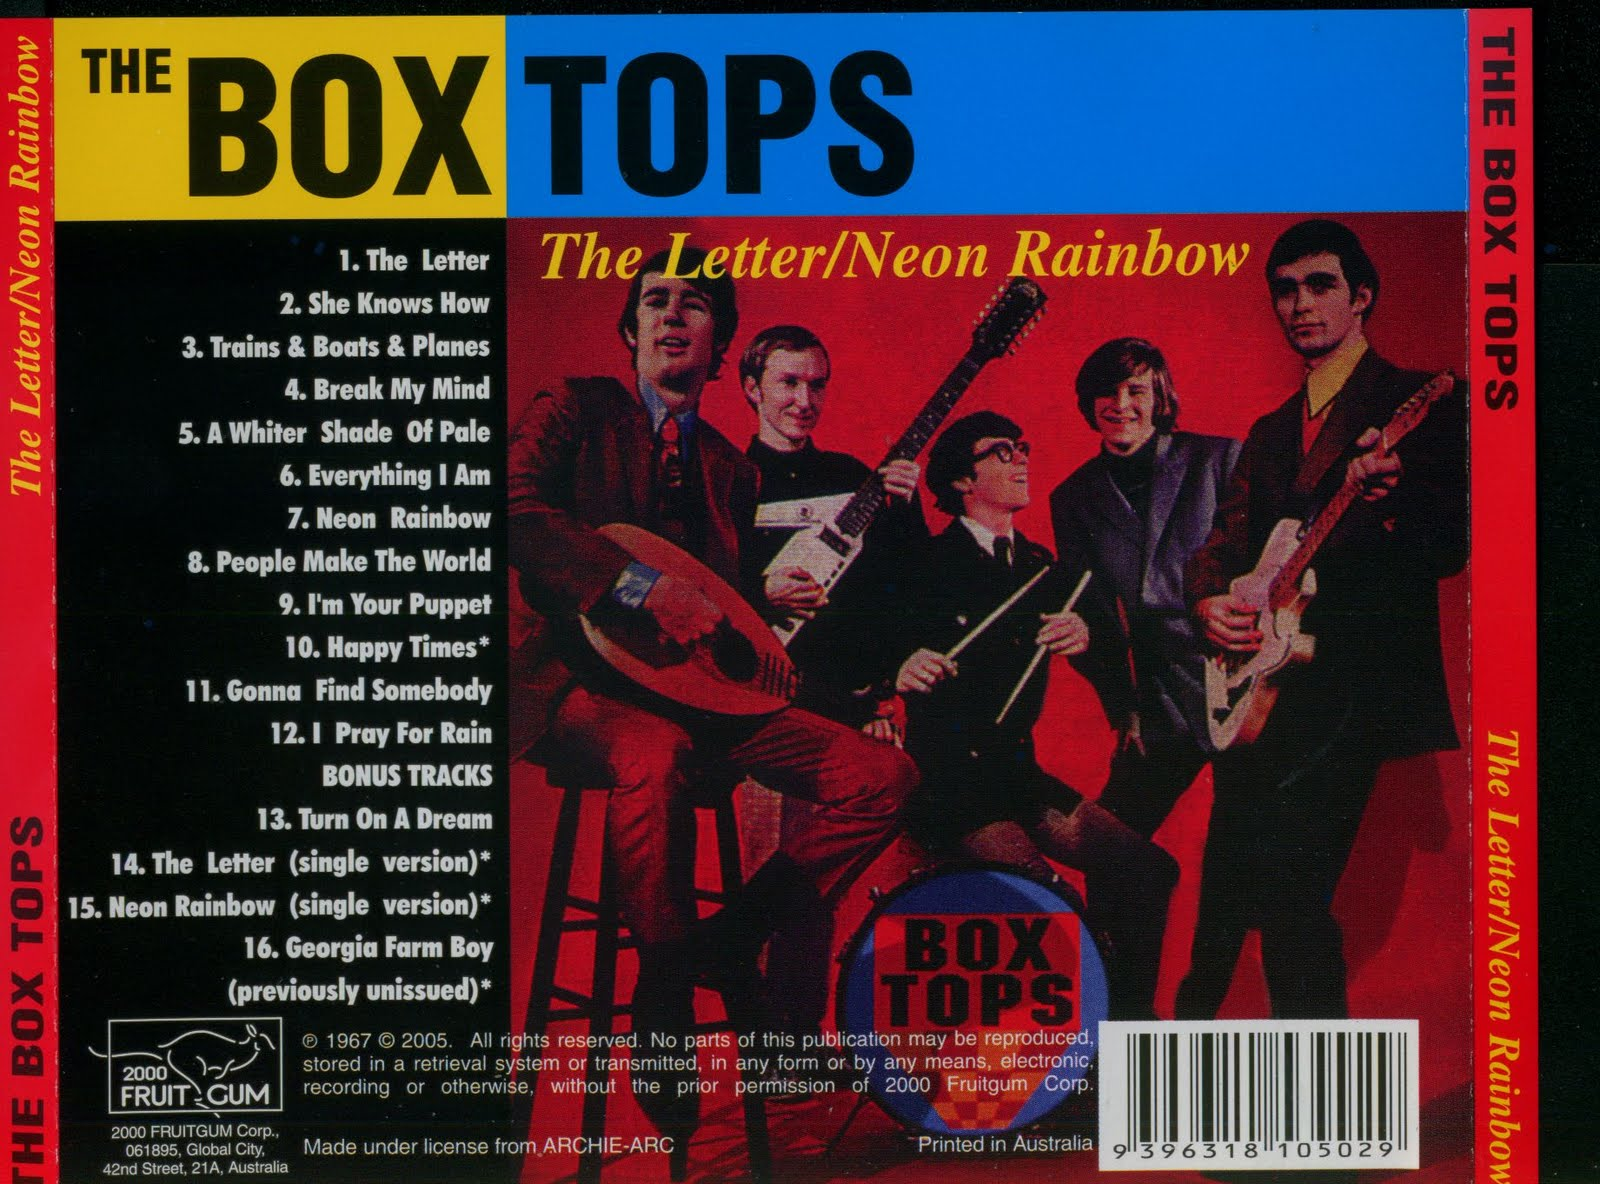 Music Archive The Box Tops The Letter Neon Rainbow 1967